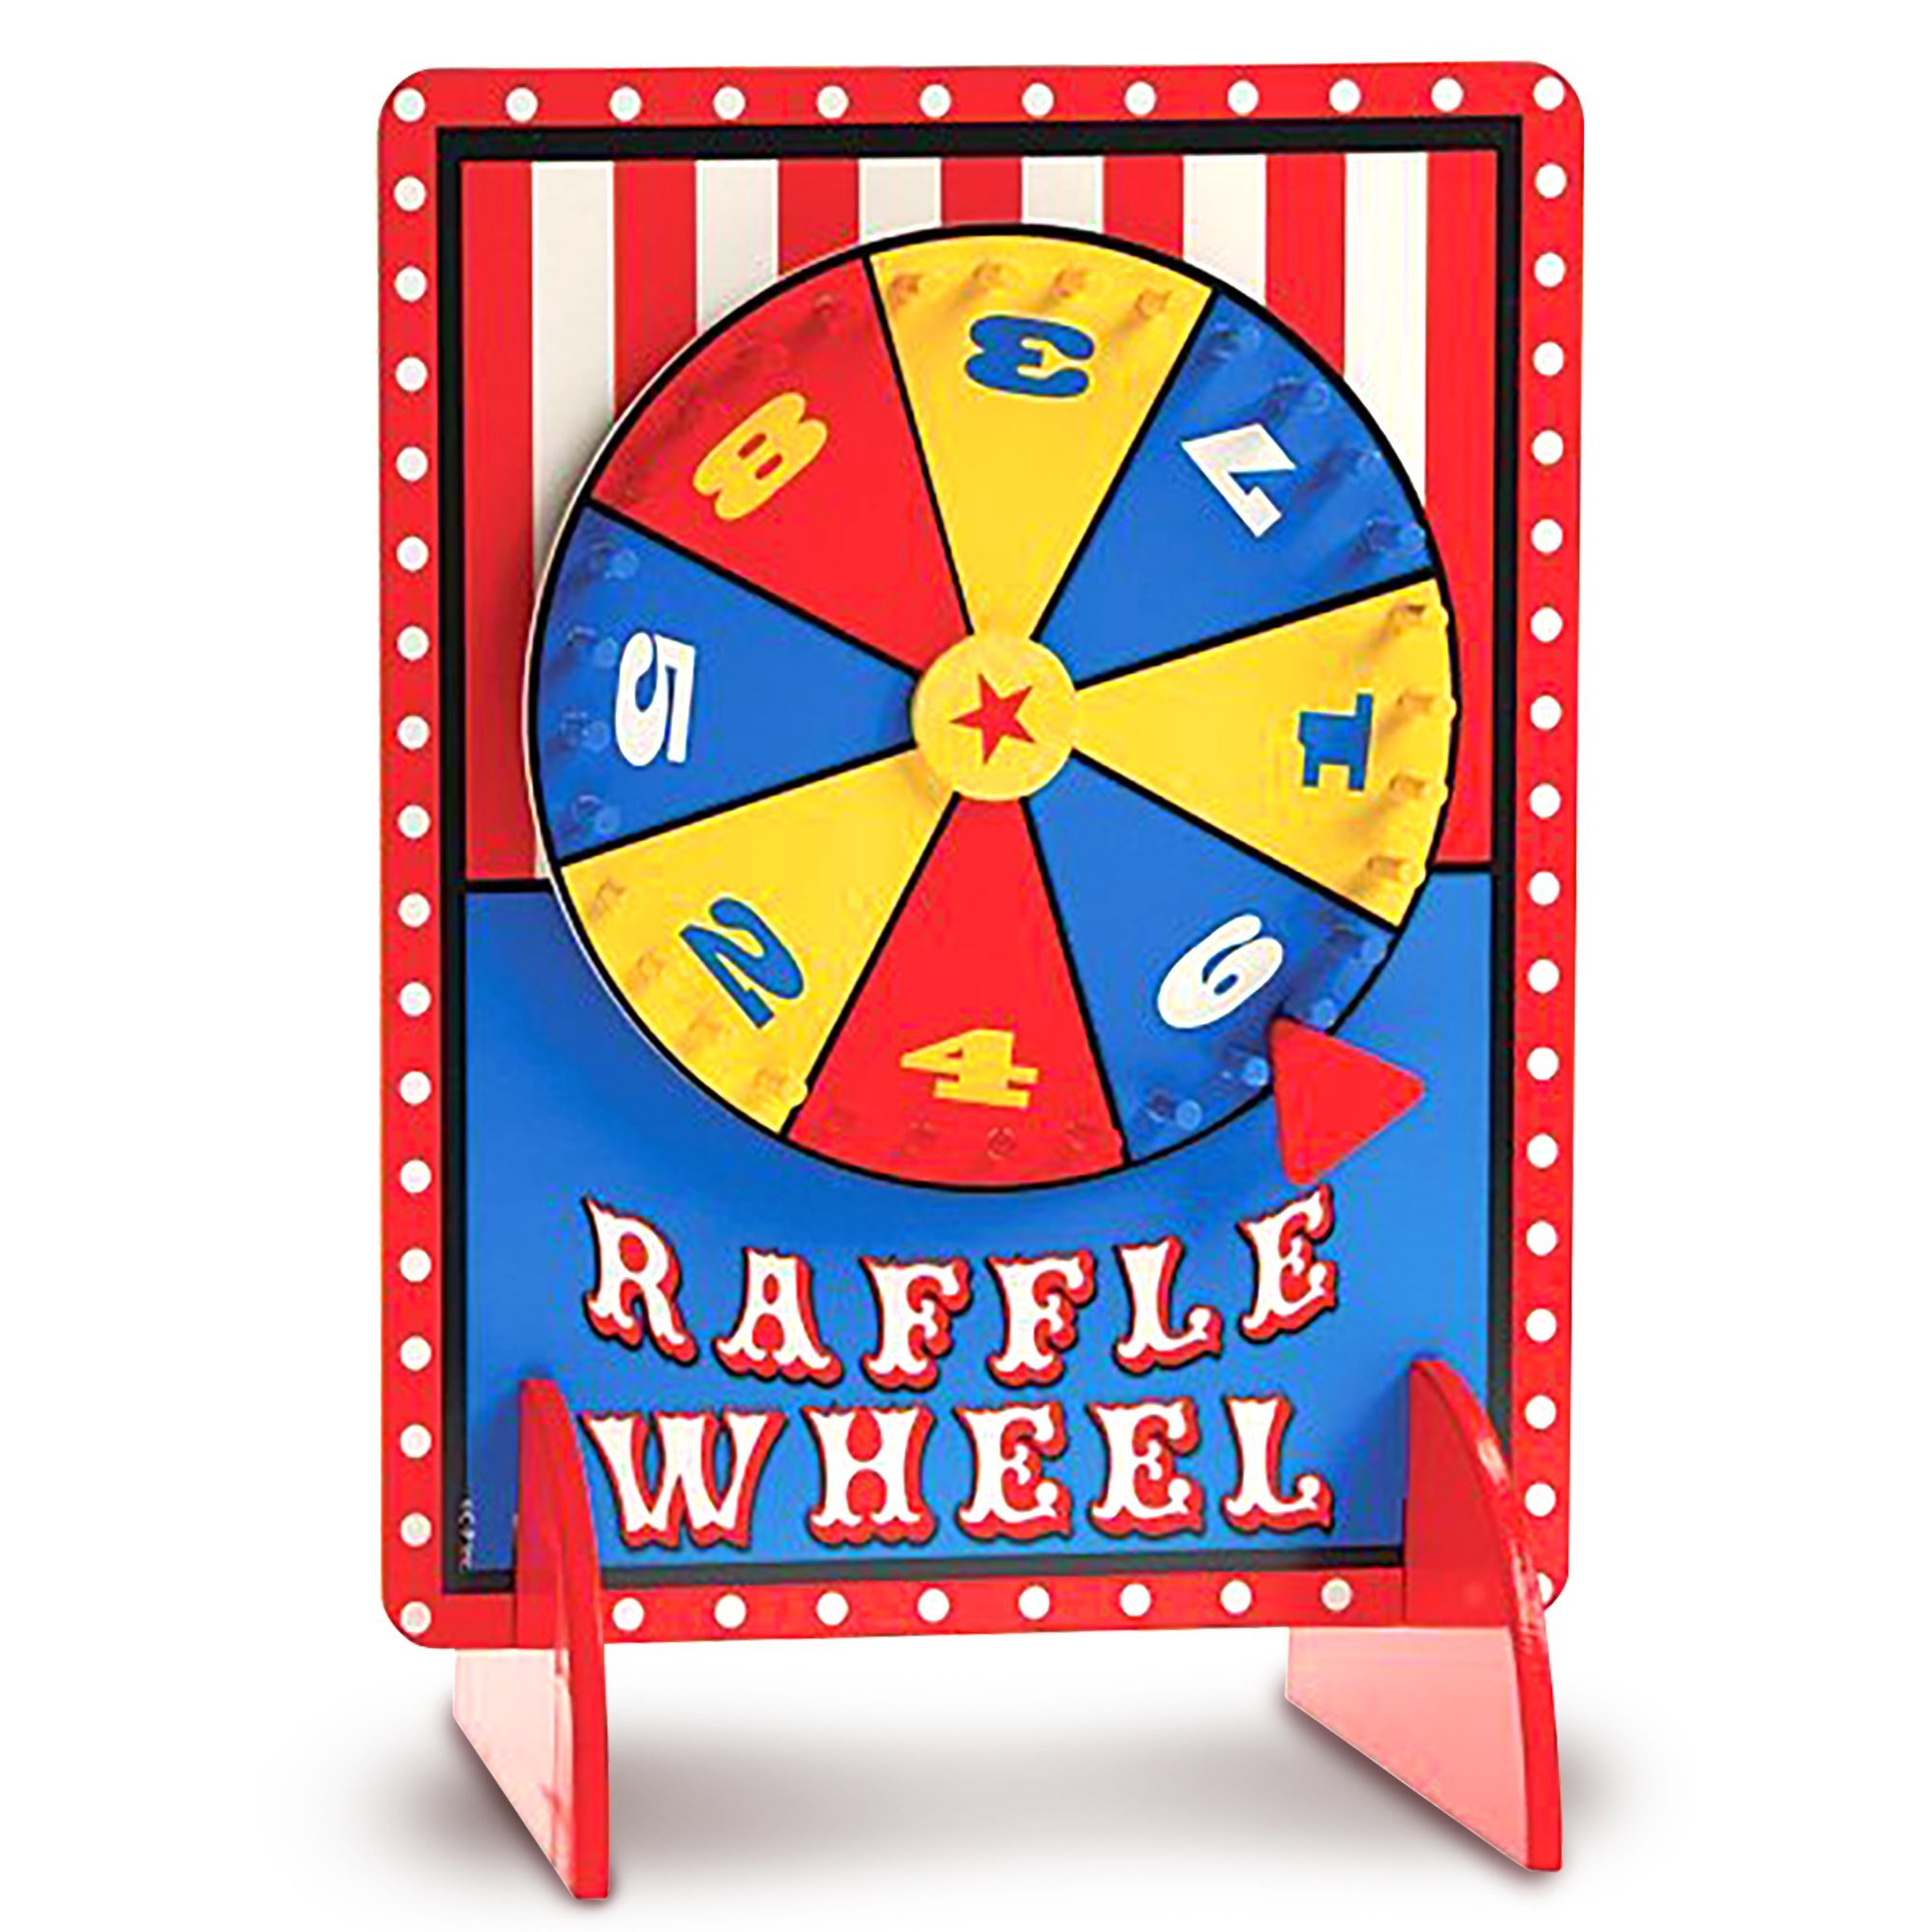 Gamie Tabletop Spinning Raffle Wheel with Stand by Premium Quality Wood Spinning Carnival Wheel | Tabletop Prize Spinner Wheels for Boys and Girls, Kids' Parties, Classroom & More